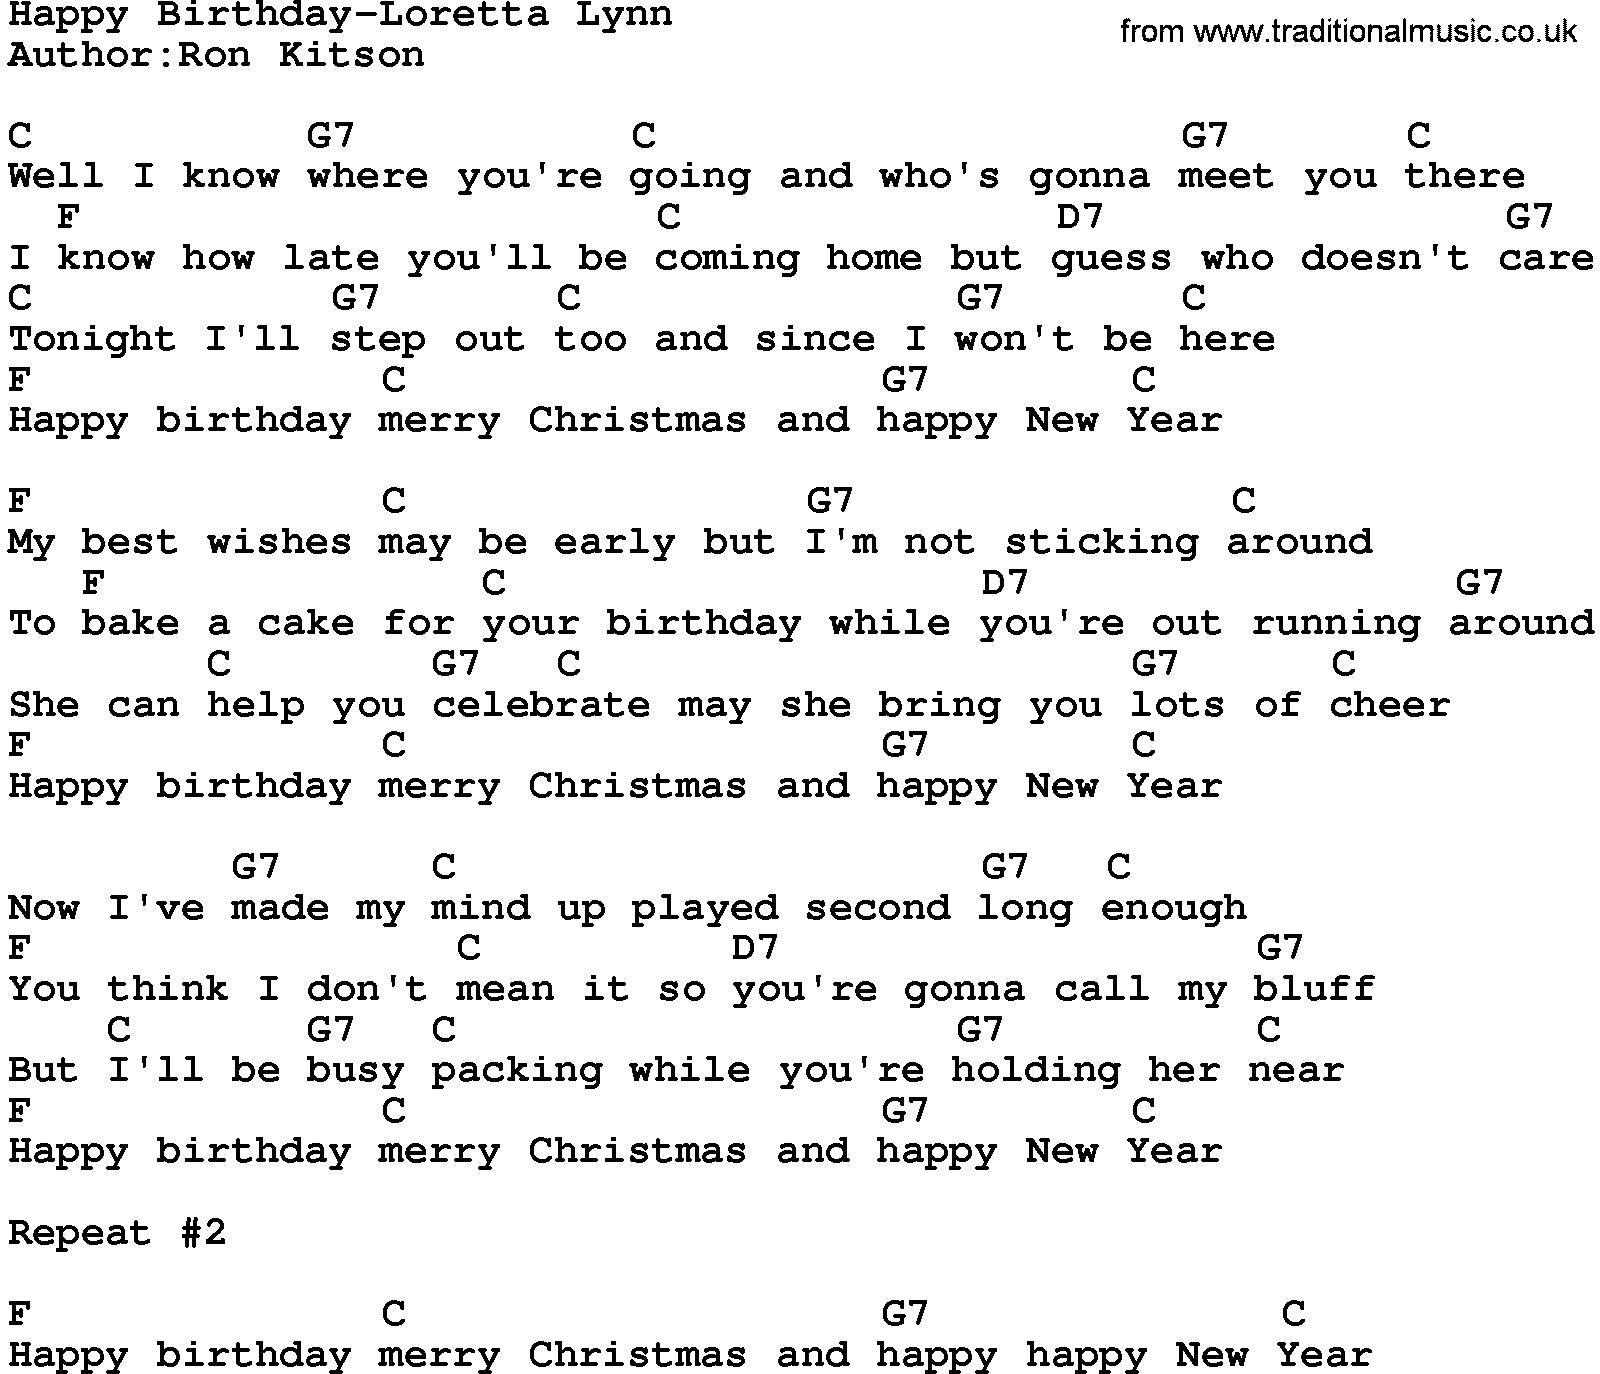 happy birthday lyrics and chords ; happy_birthday-loretta_lynn